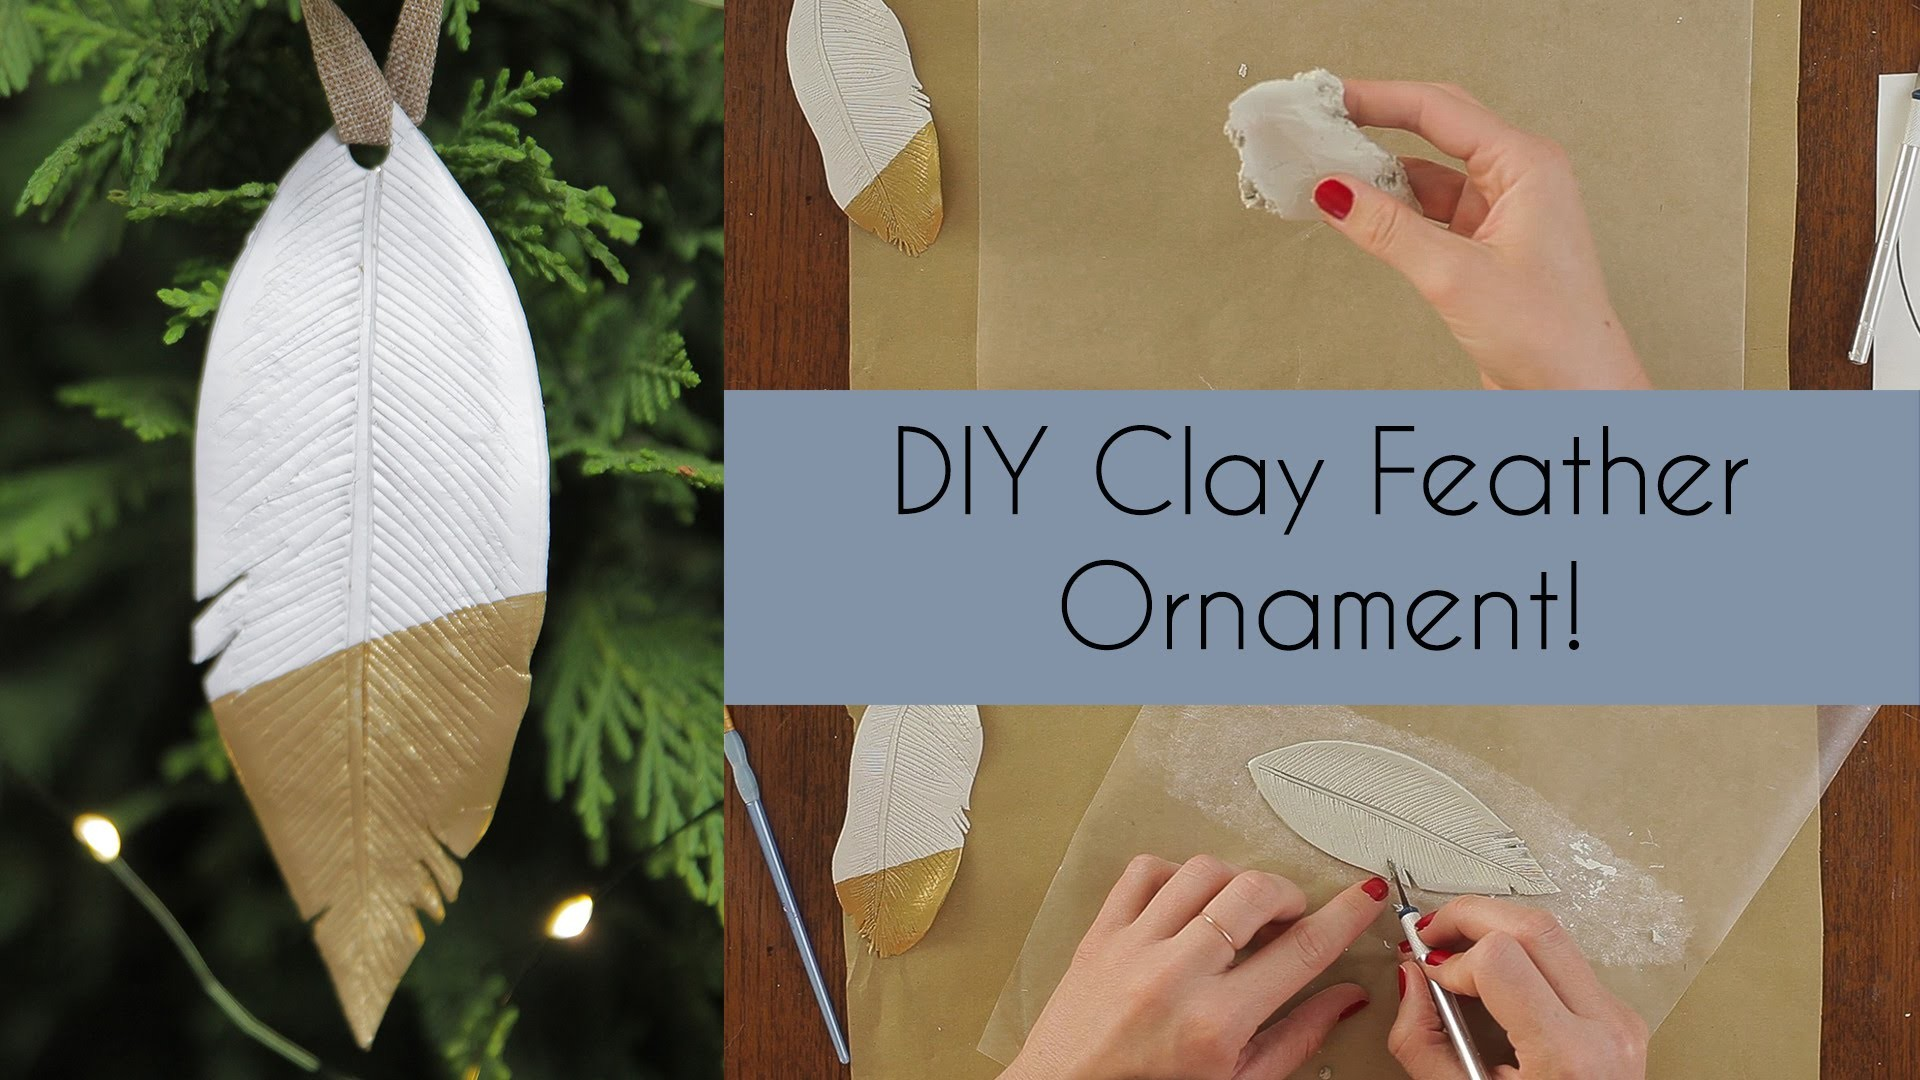 DIY Clay Feather Ornament